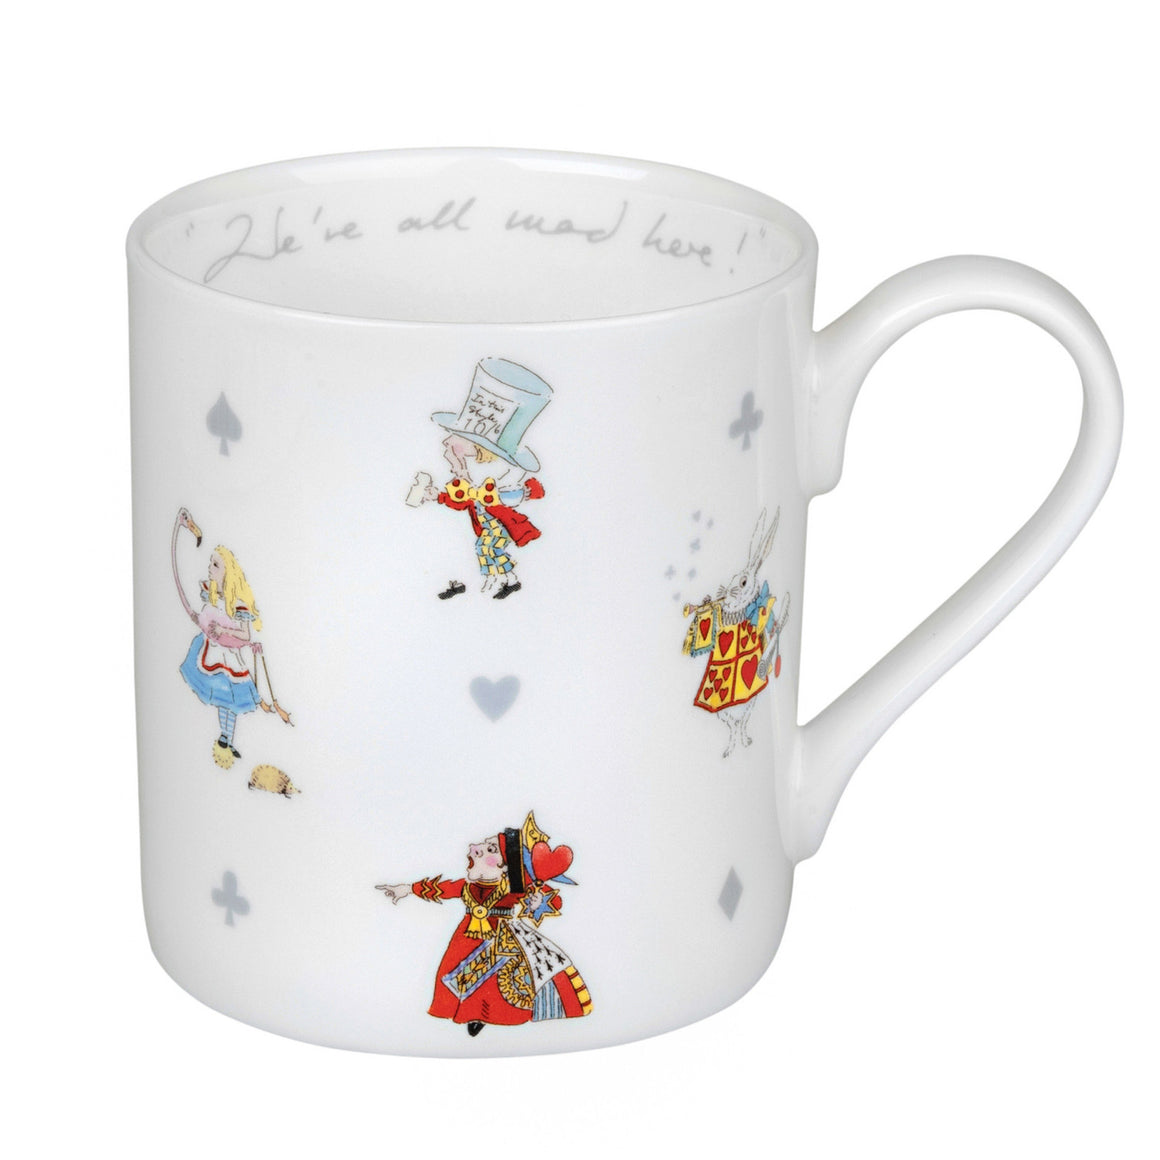 Alice in Wonderland mug - Todd & Holland Tea Merchants